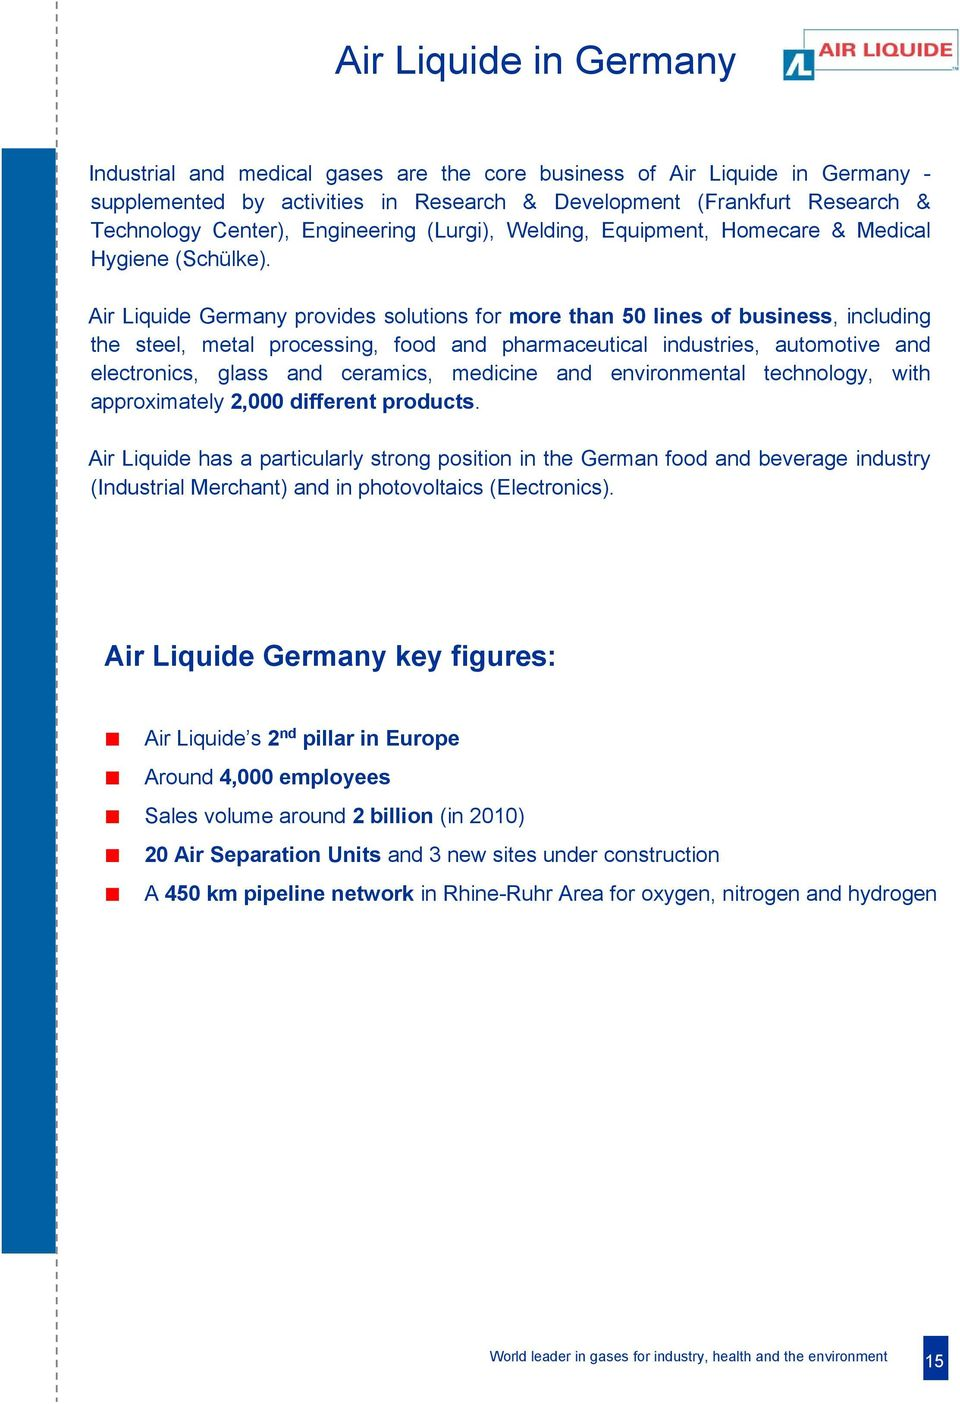 Air Liquide Germany provides solutions for more than 50 lines of business, including the steel, metal processing, food and pharmaceutical industries, automotive and electronics, glass and ceramics,